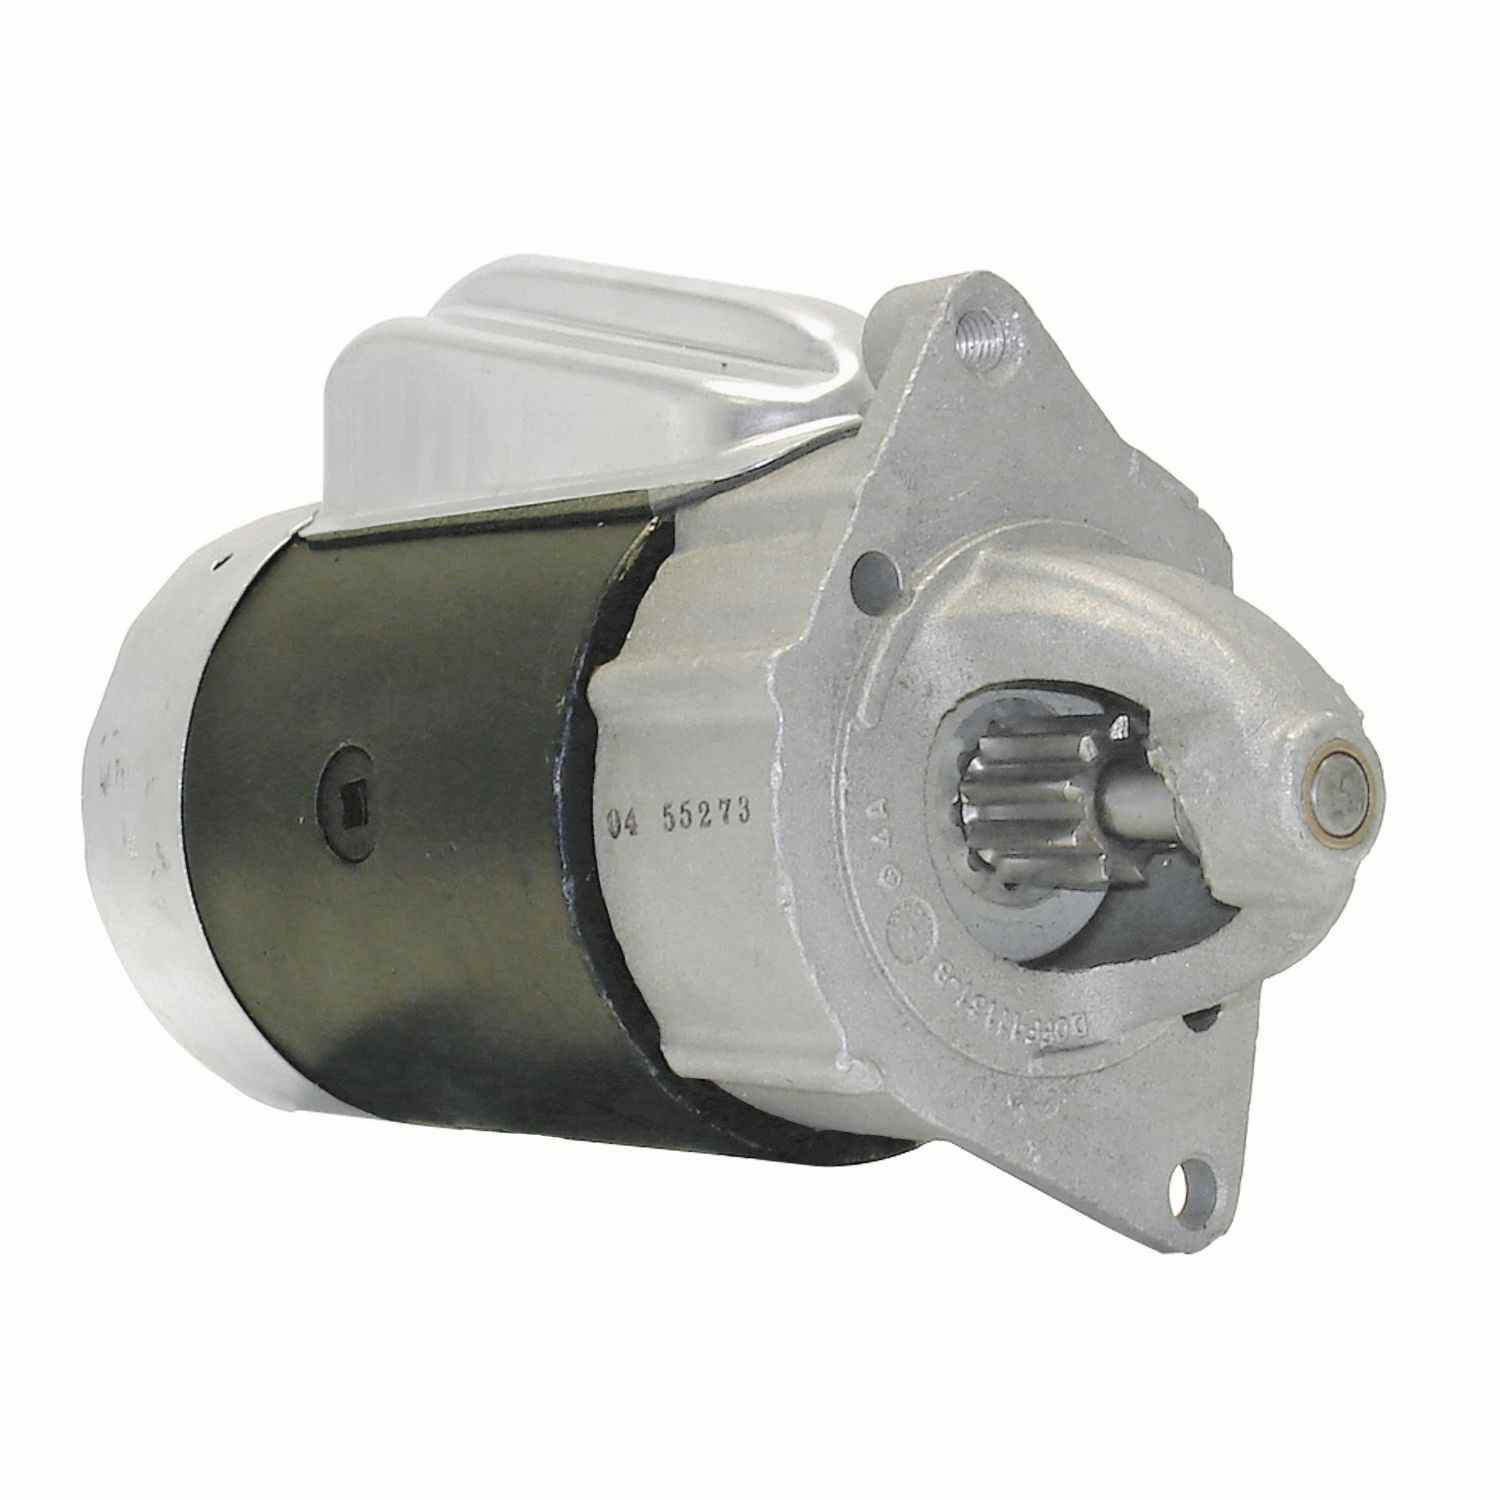 ACDELCO GOLD/PROFESSIONAL - Reman Starter Motor - DCC 336-1037